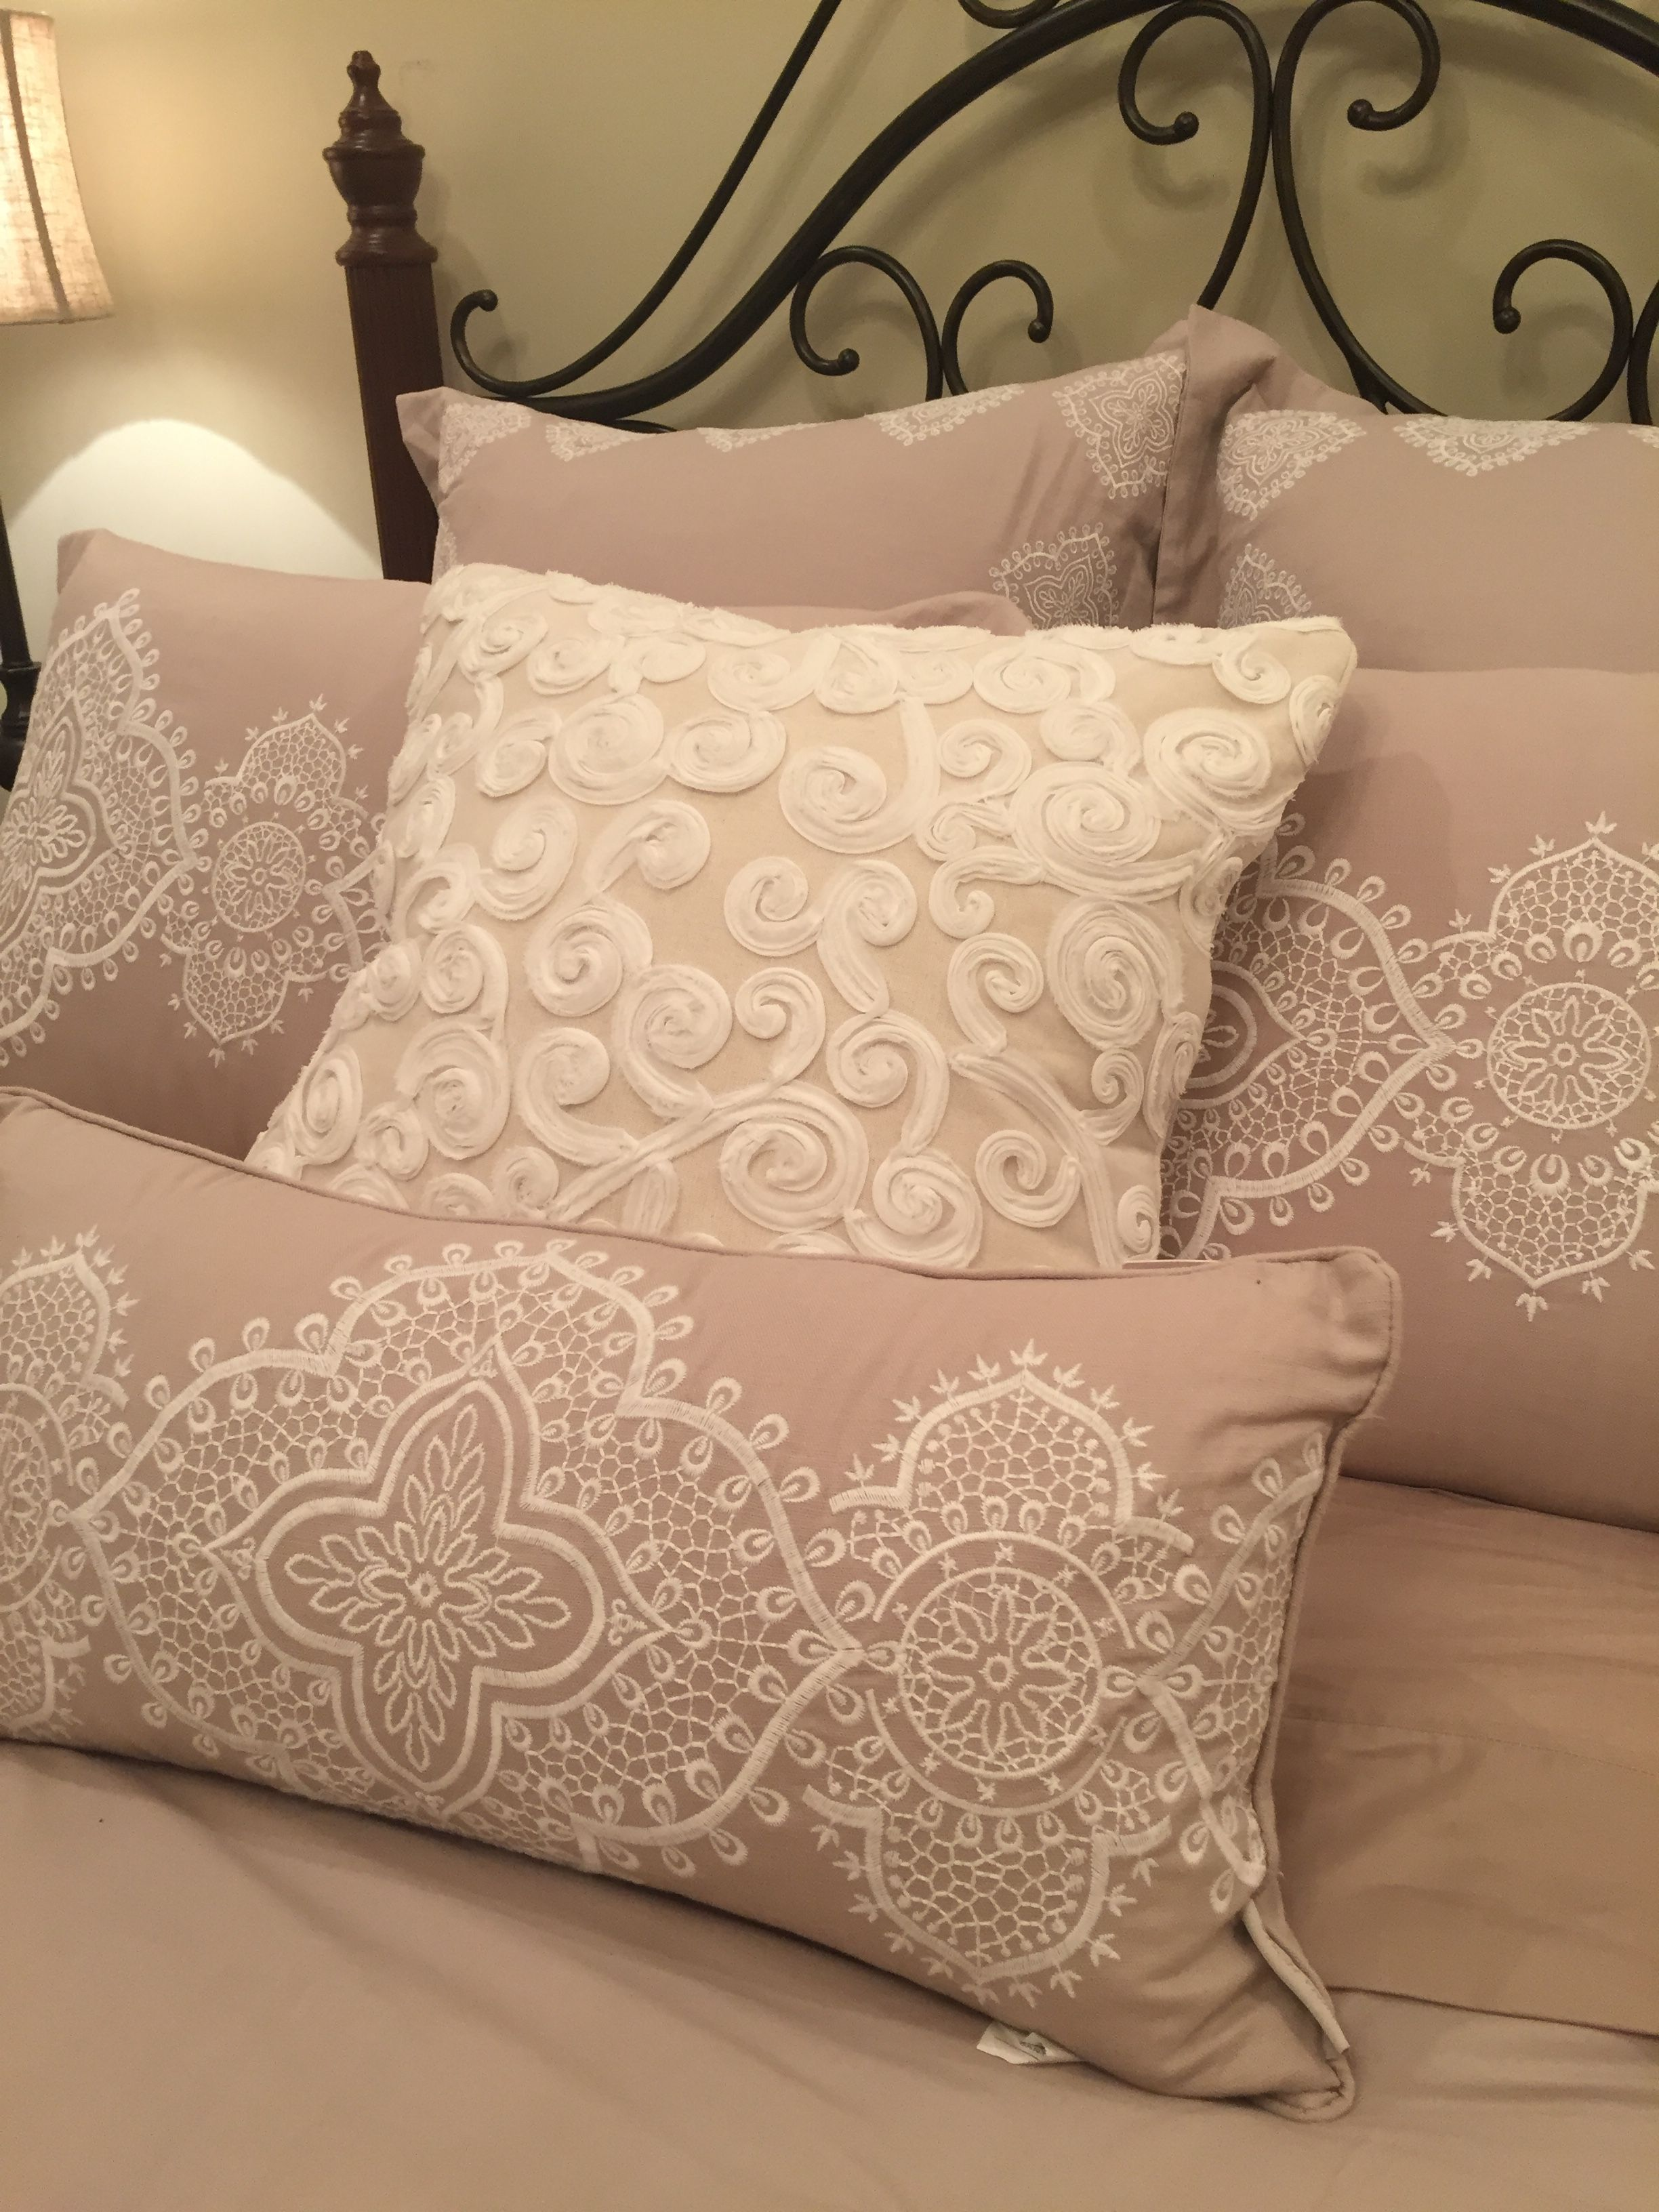 bedding by nina campbell from steinmart